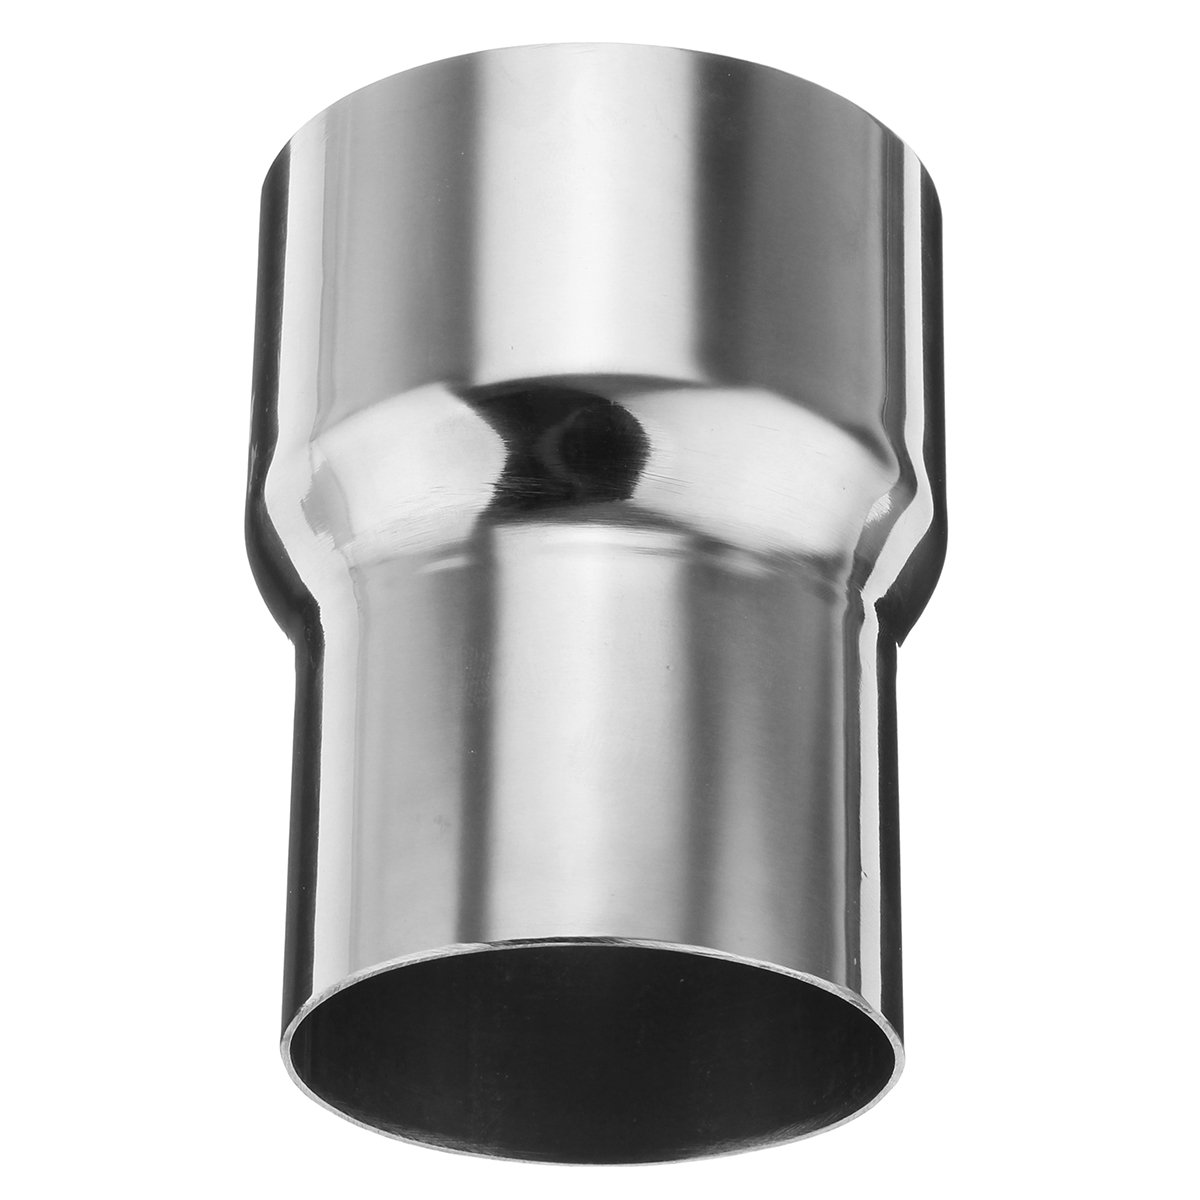 GOZAR 3 Inch To 2.5 Inch OD Stainless Standard Exhaust Pipe Connector Adapter Reducer Tube